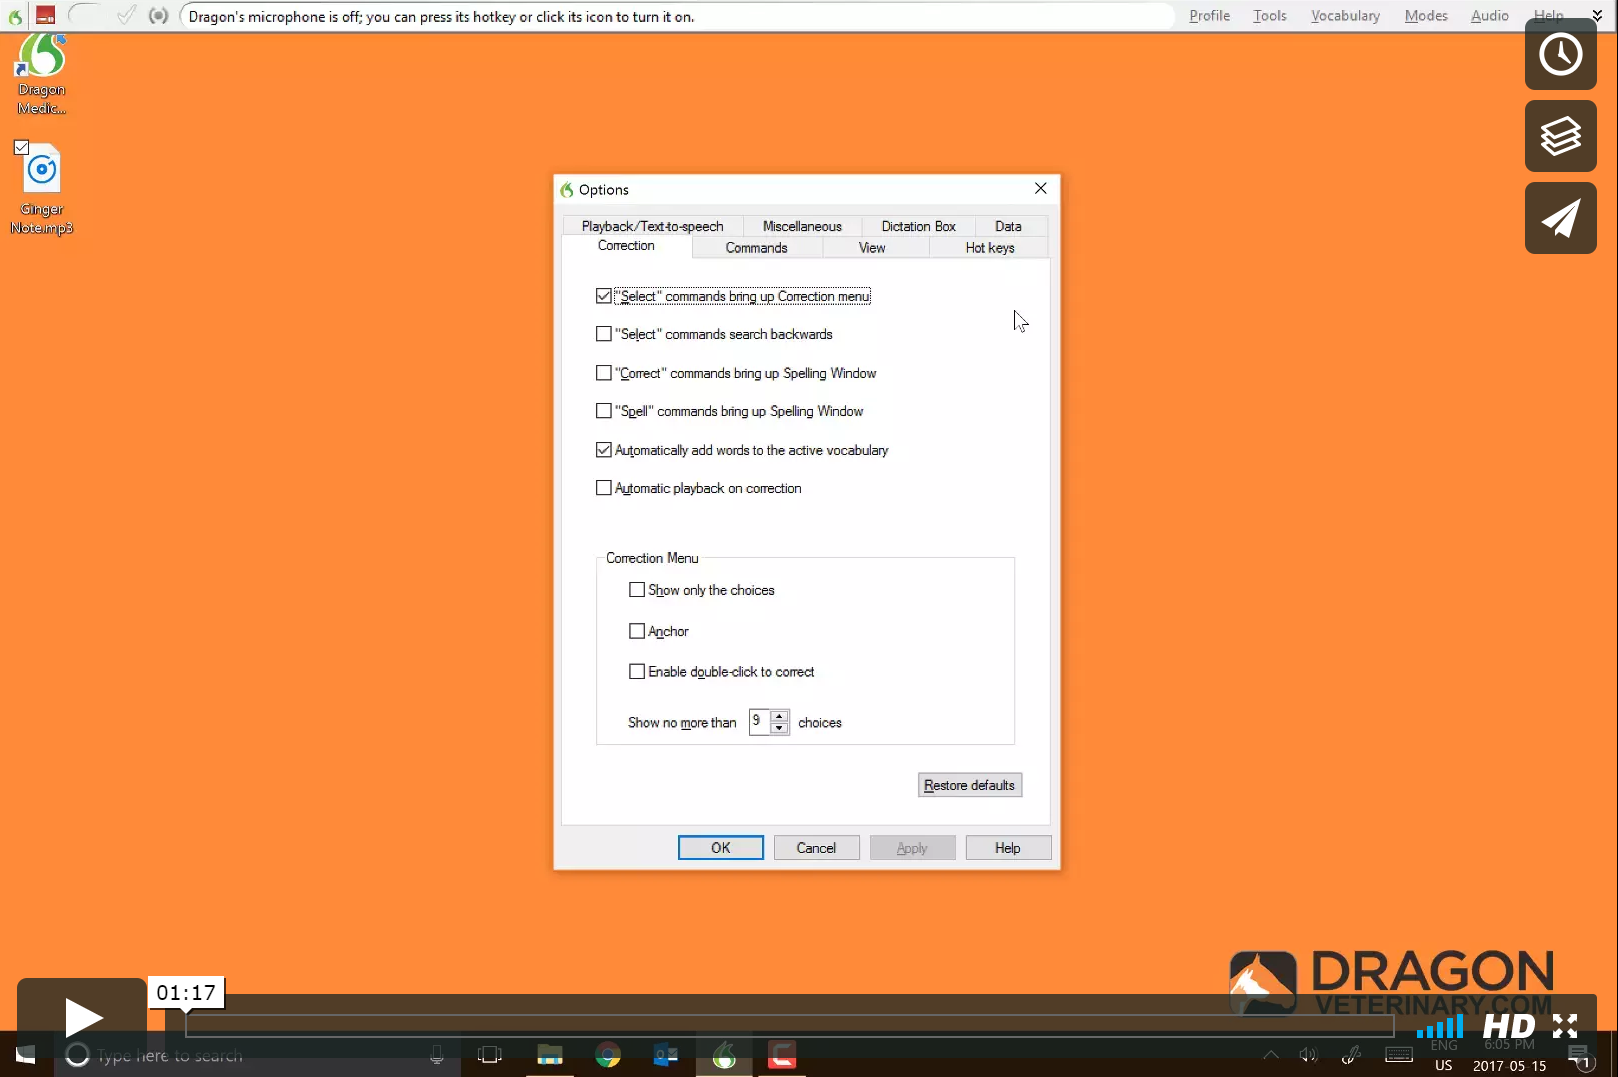 TUTORIAL #20: SWITCHING YOUR DICTATION SOURCE   This video builds upon the previous tutorial by going over the steps necessary to switch between the multiple dictation sources within your Dragon Veterinary profile.